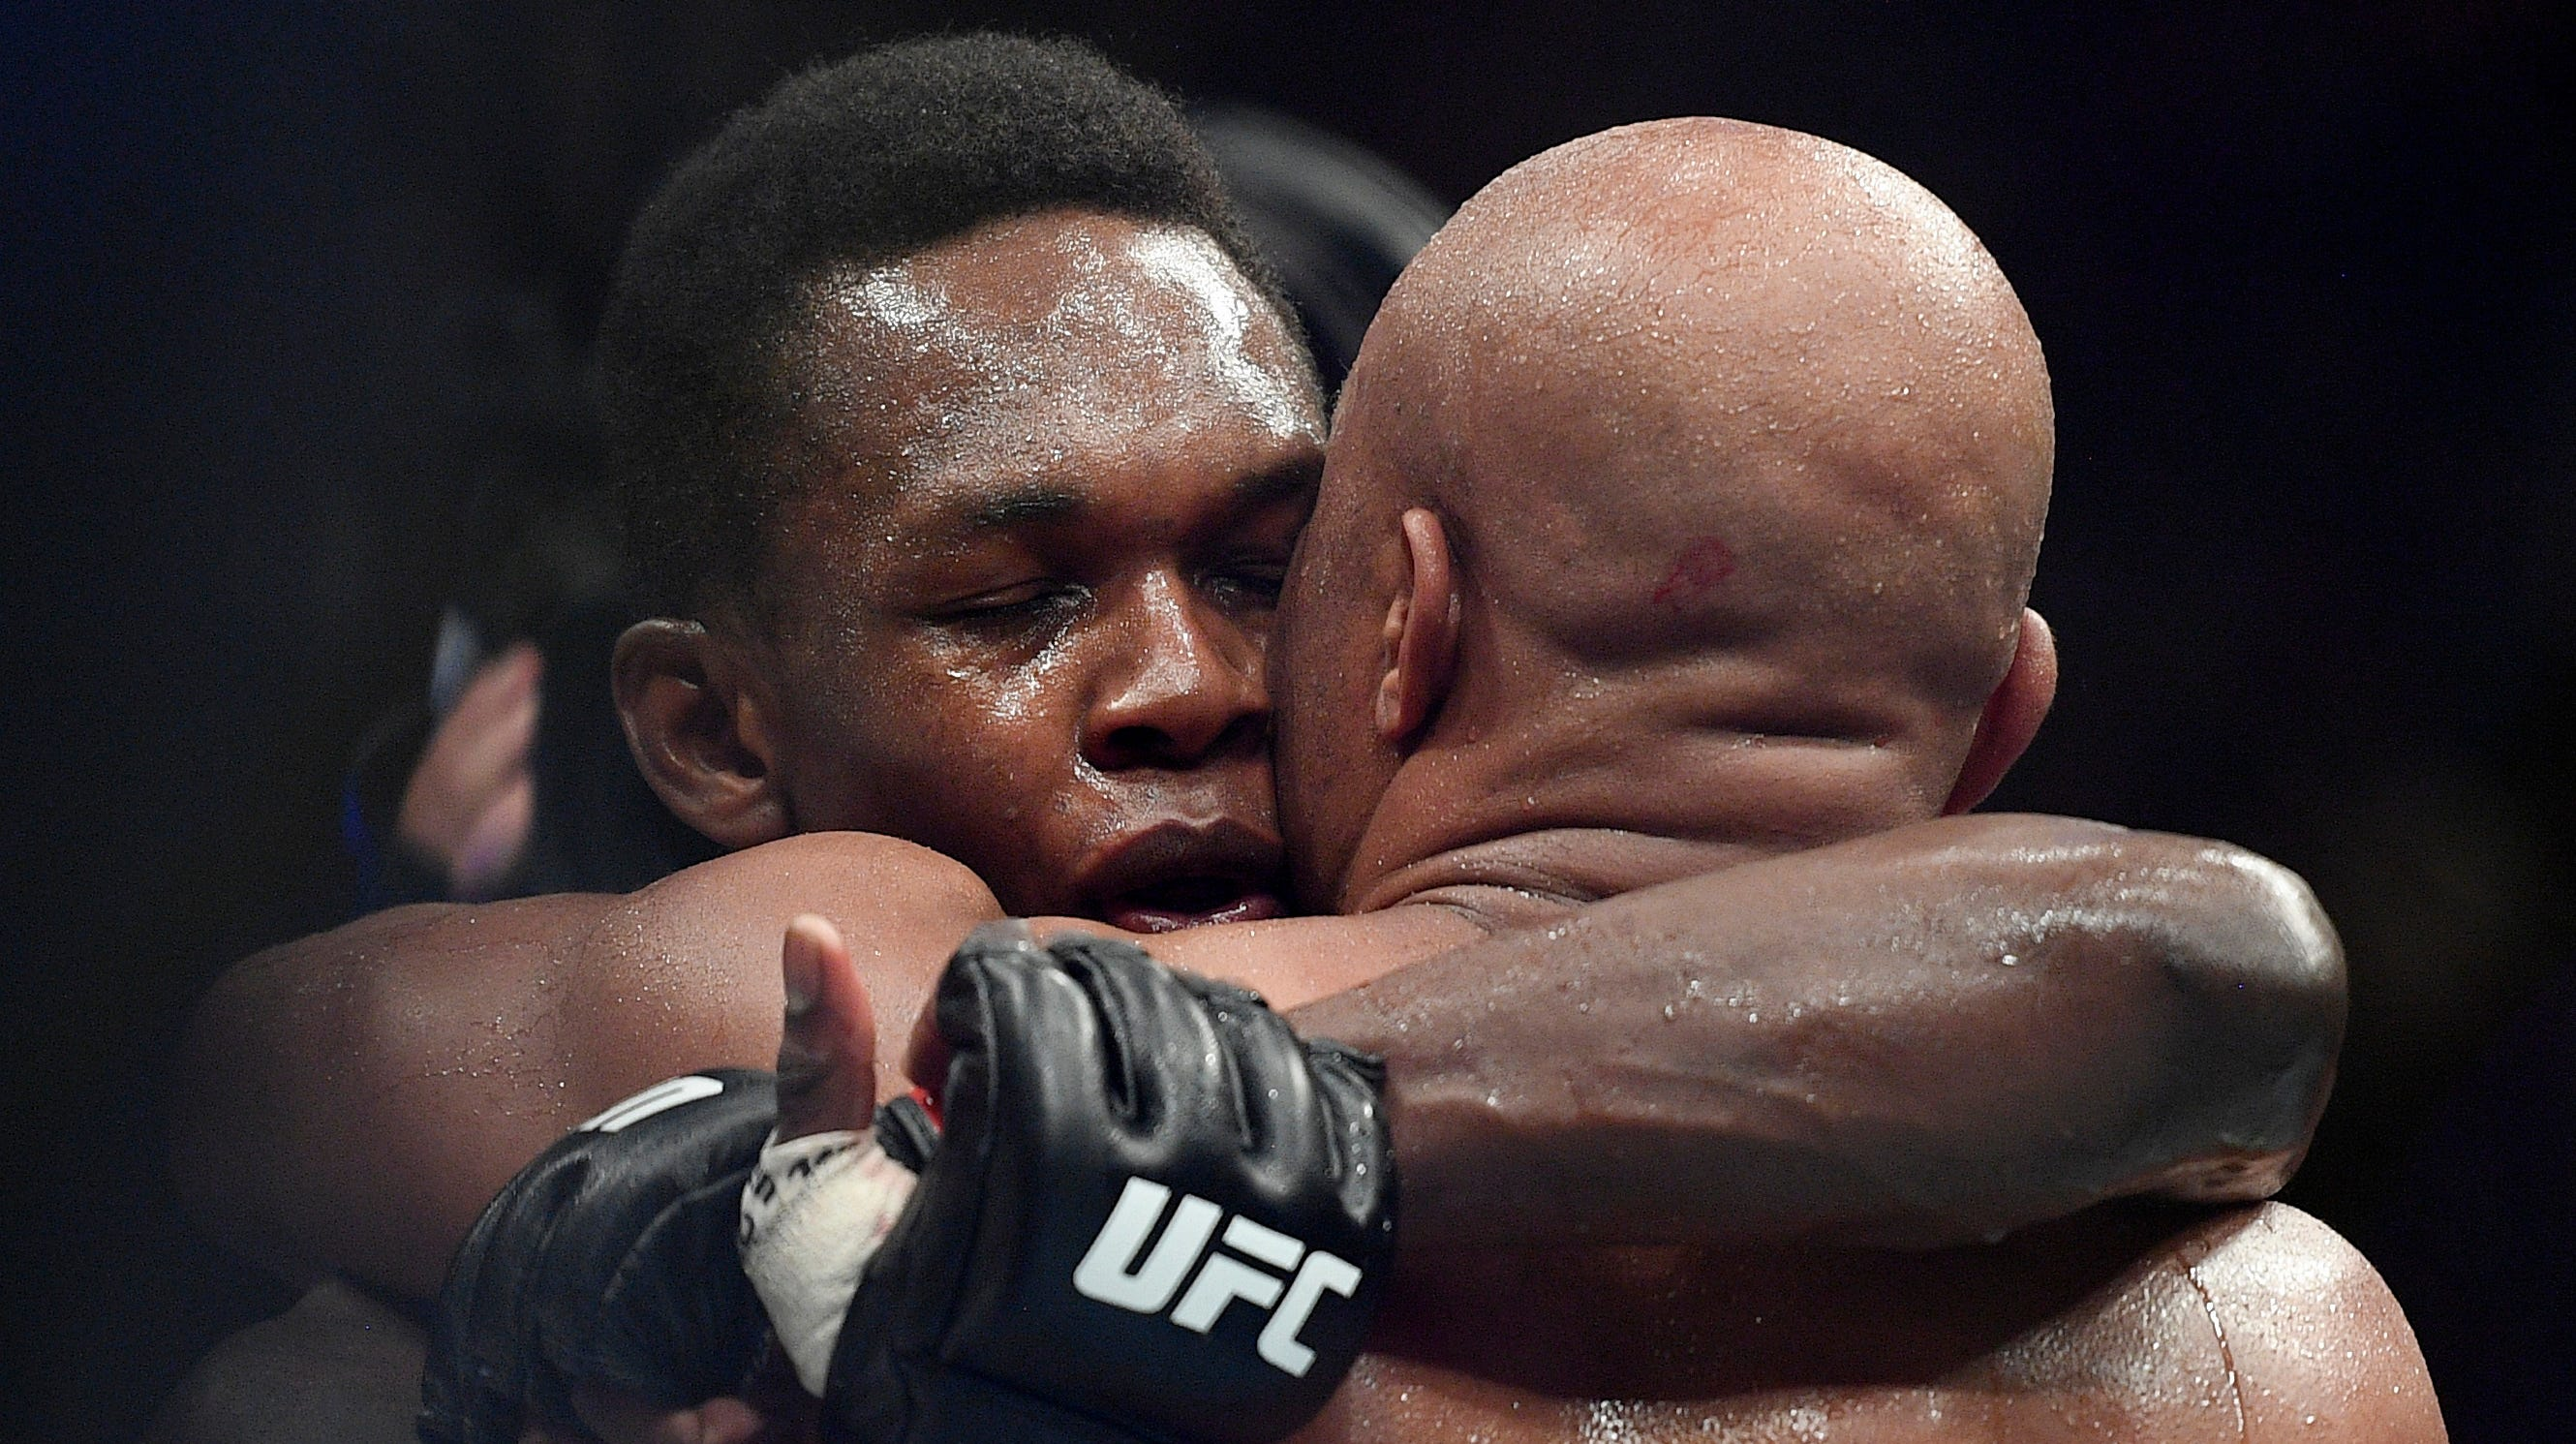 Israel Adesanya, left, hugs Anderson Silva after winning their middleweight bout at the UFC 234.